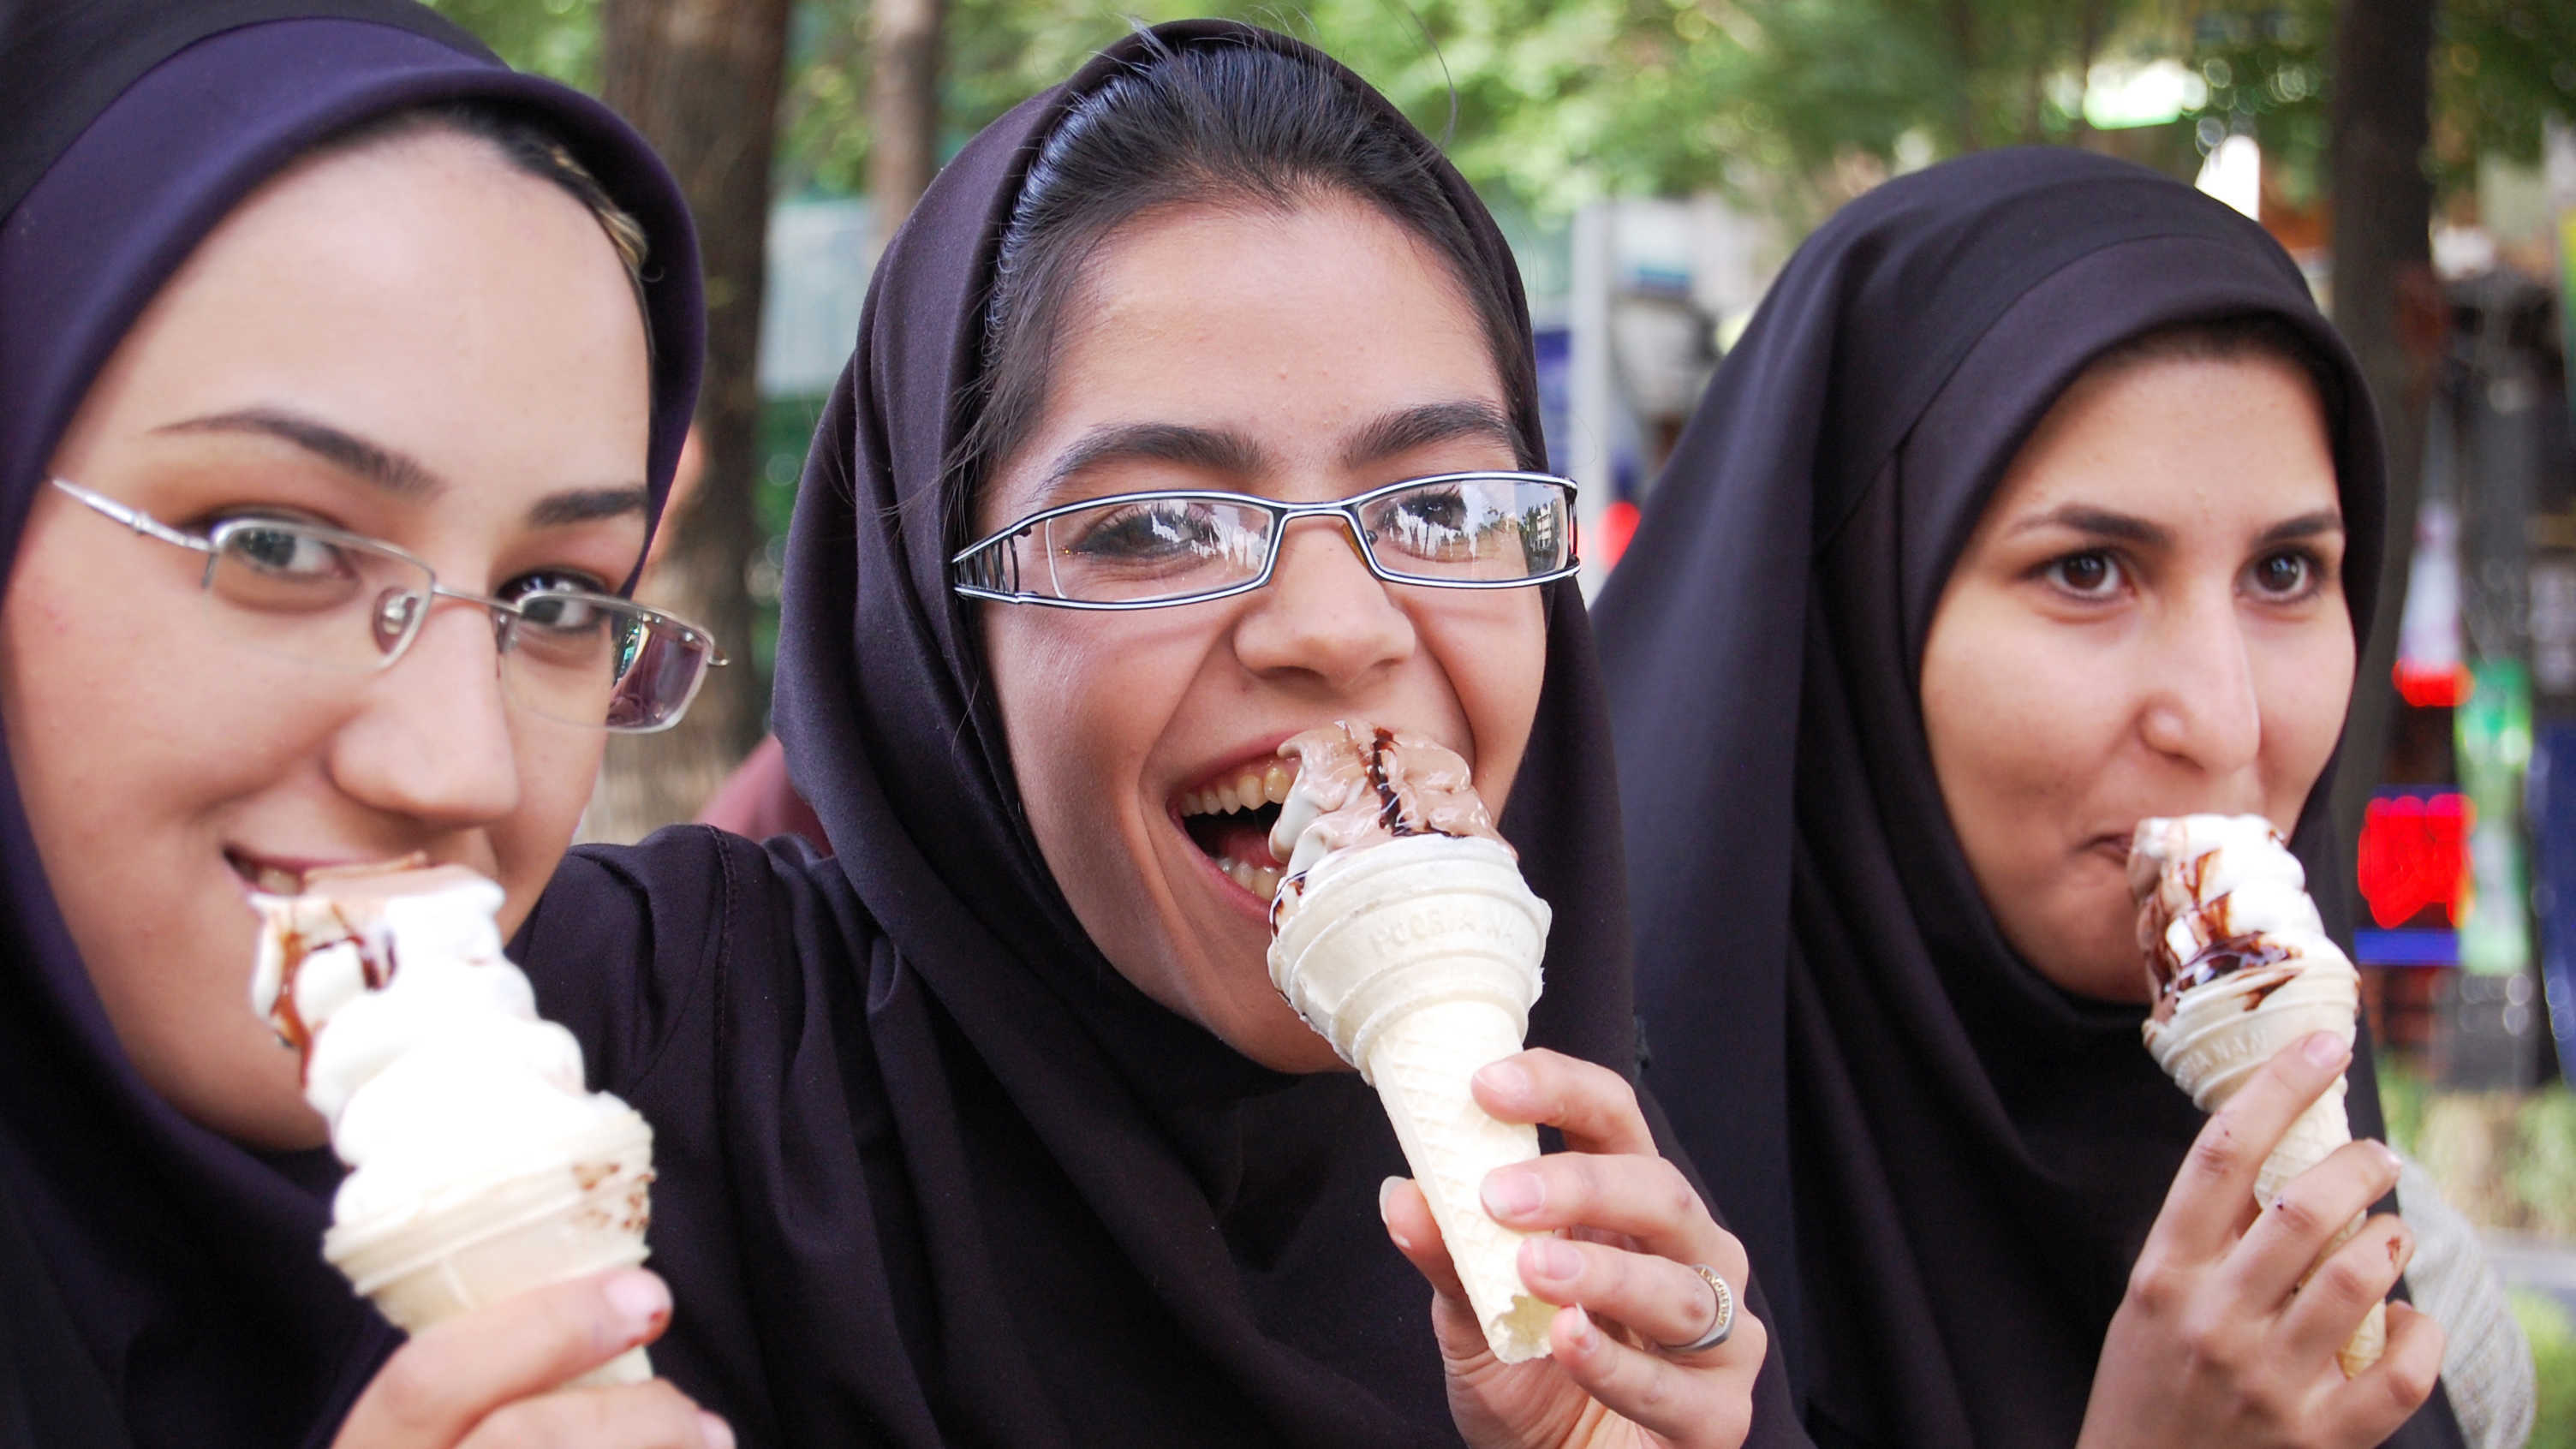 Iranian girls eating ice cream